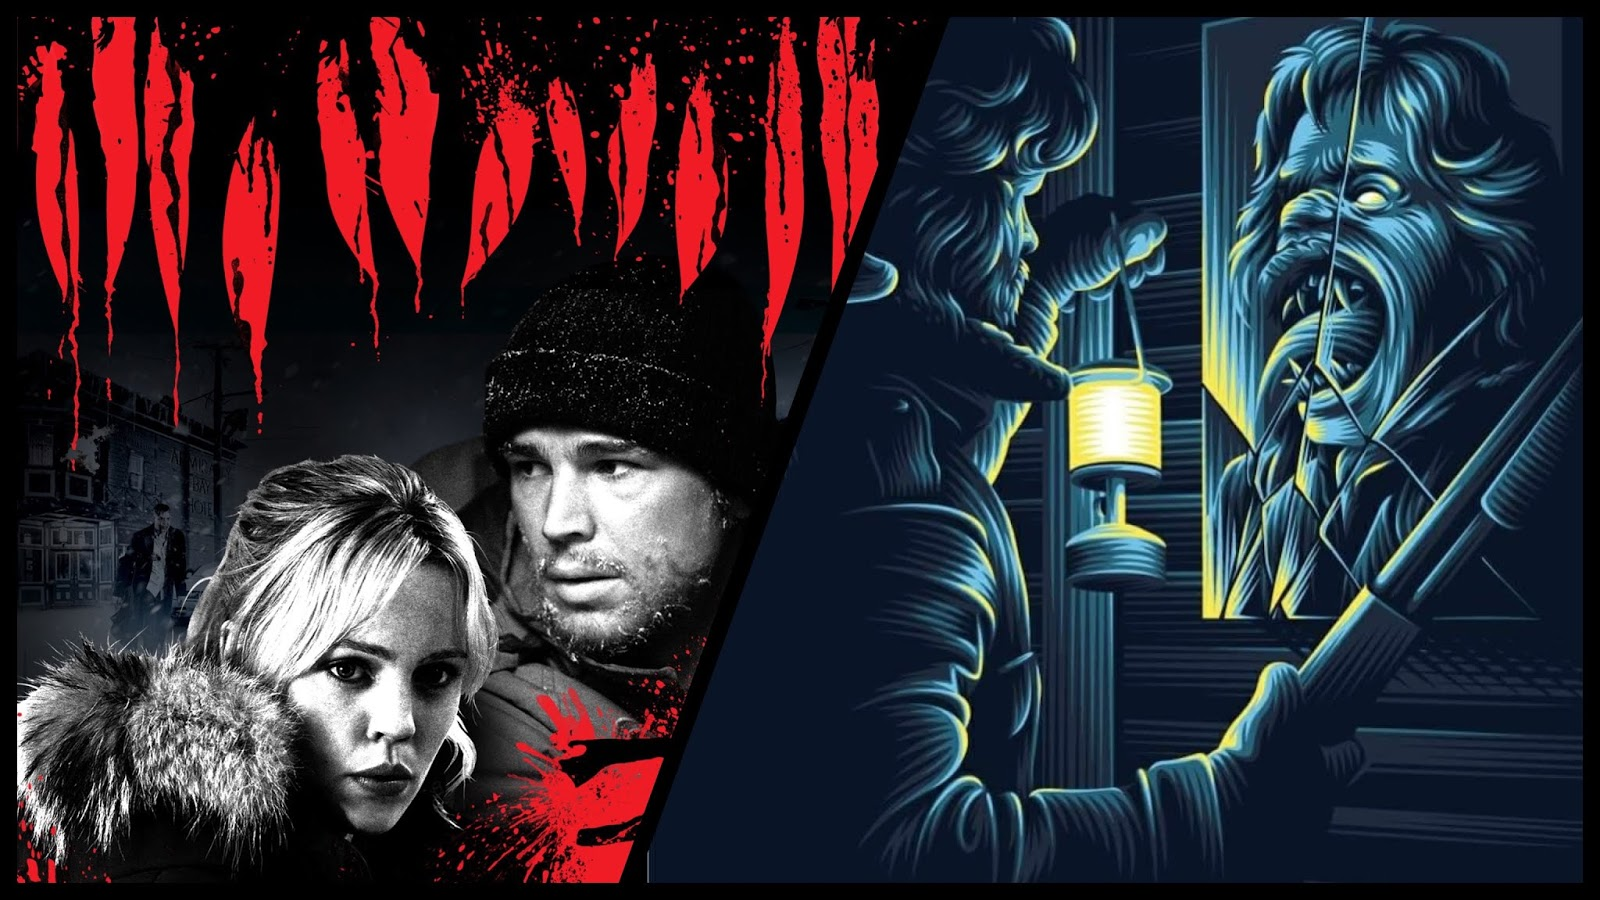 Sinister Pairings 30 Days Of Night 2007 The Thing 1982